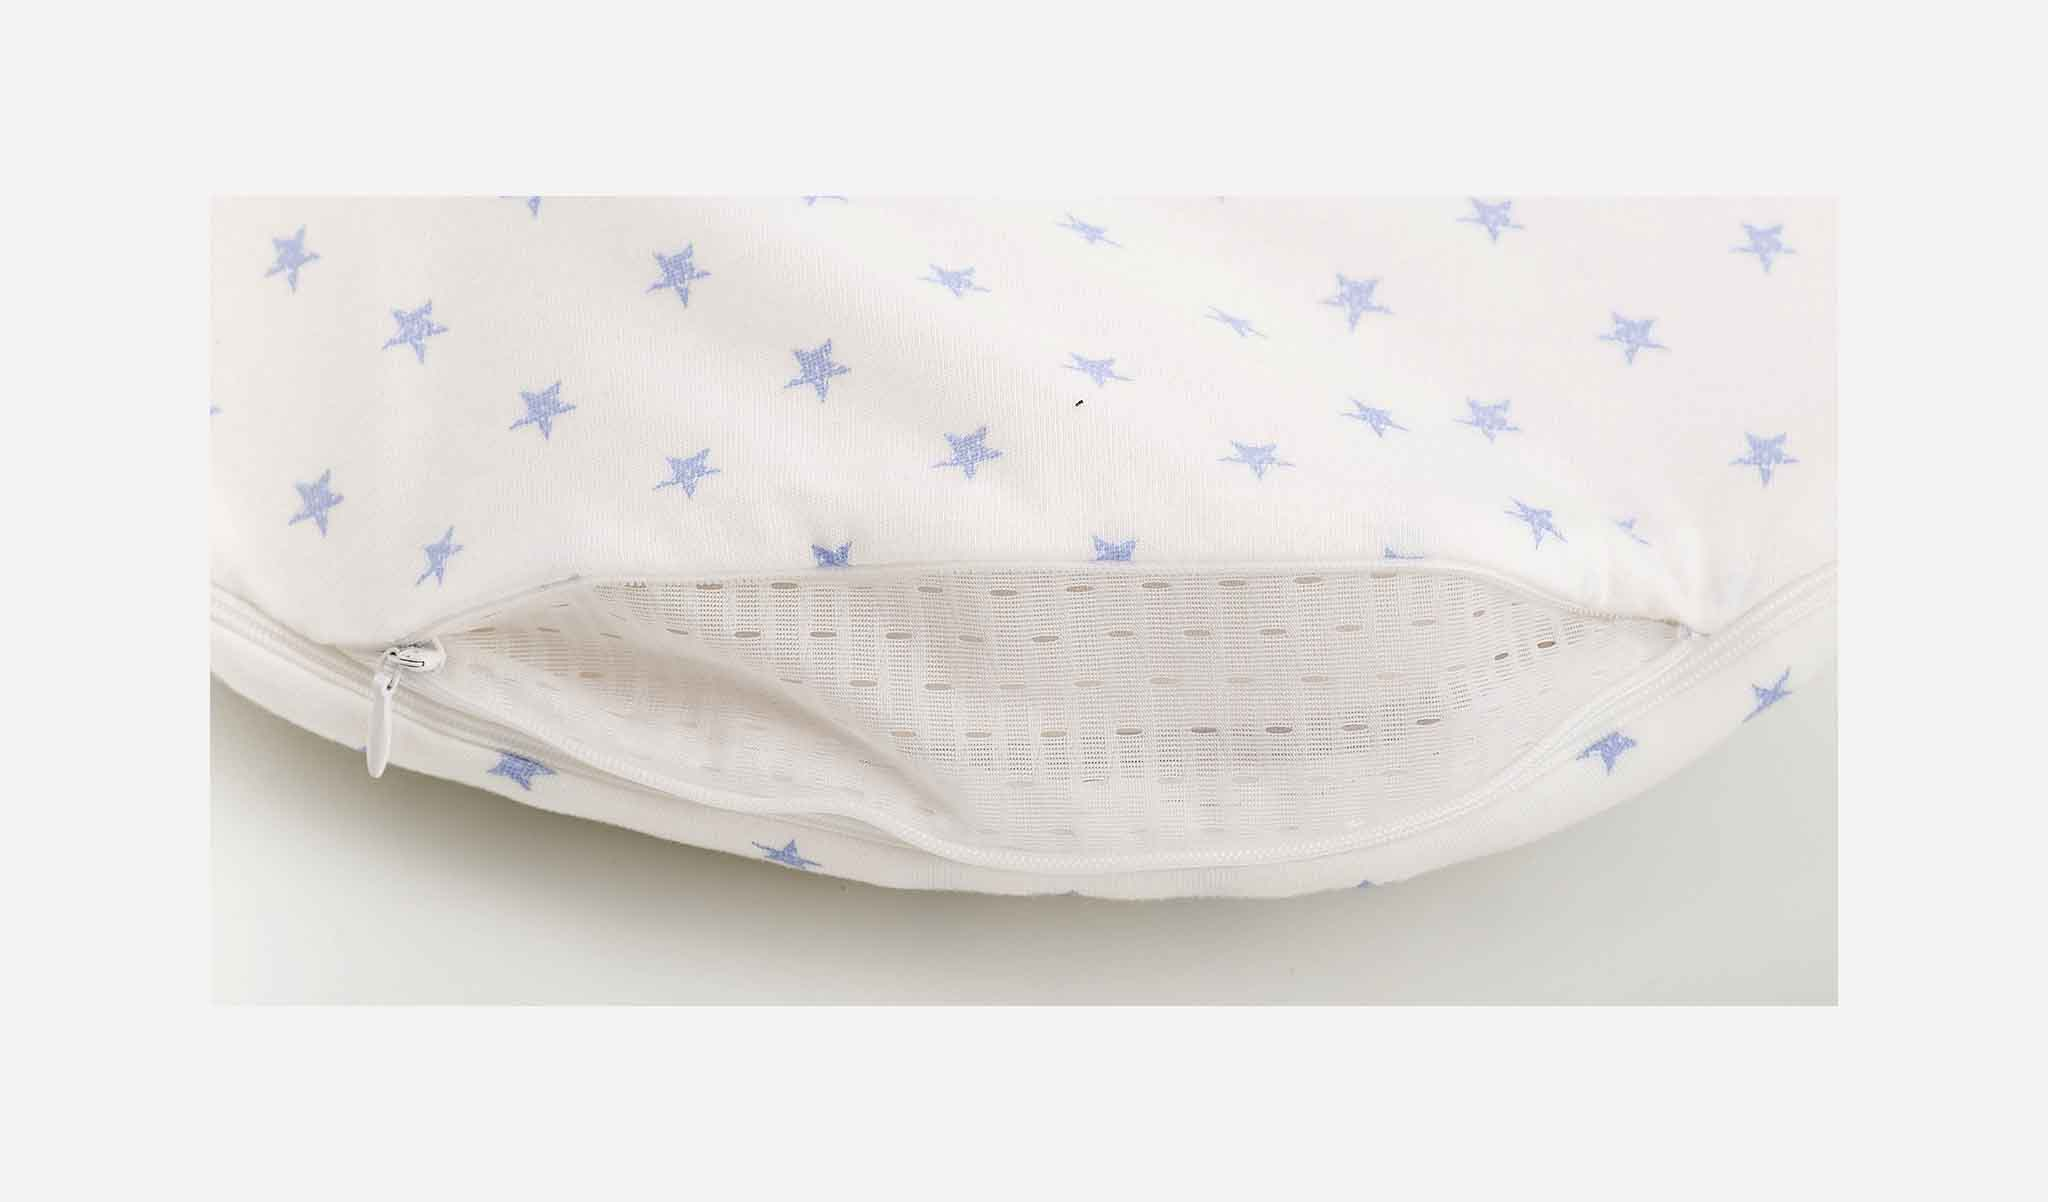 S0101353 - Stars sleeping bag set in blue